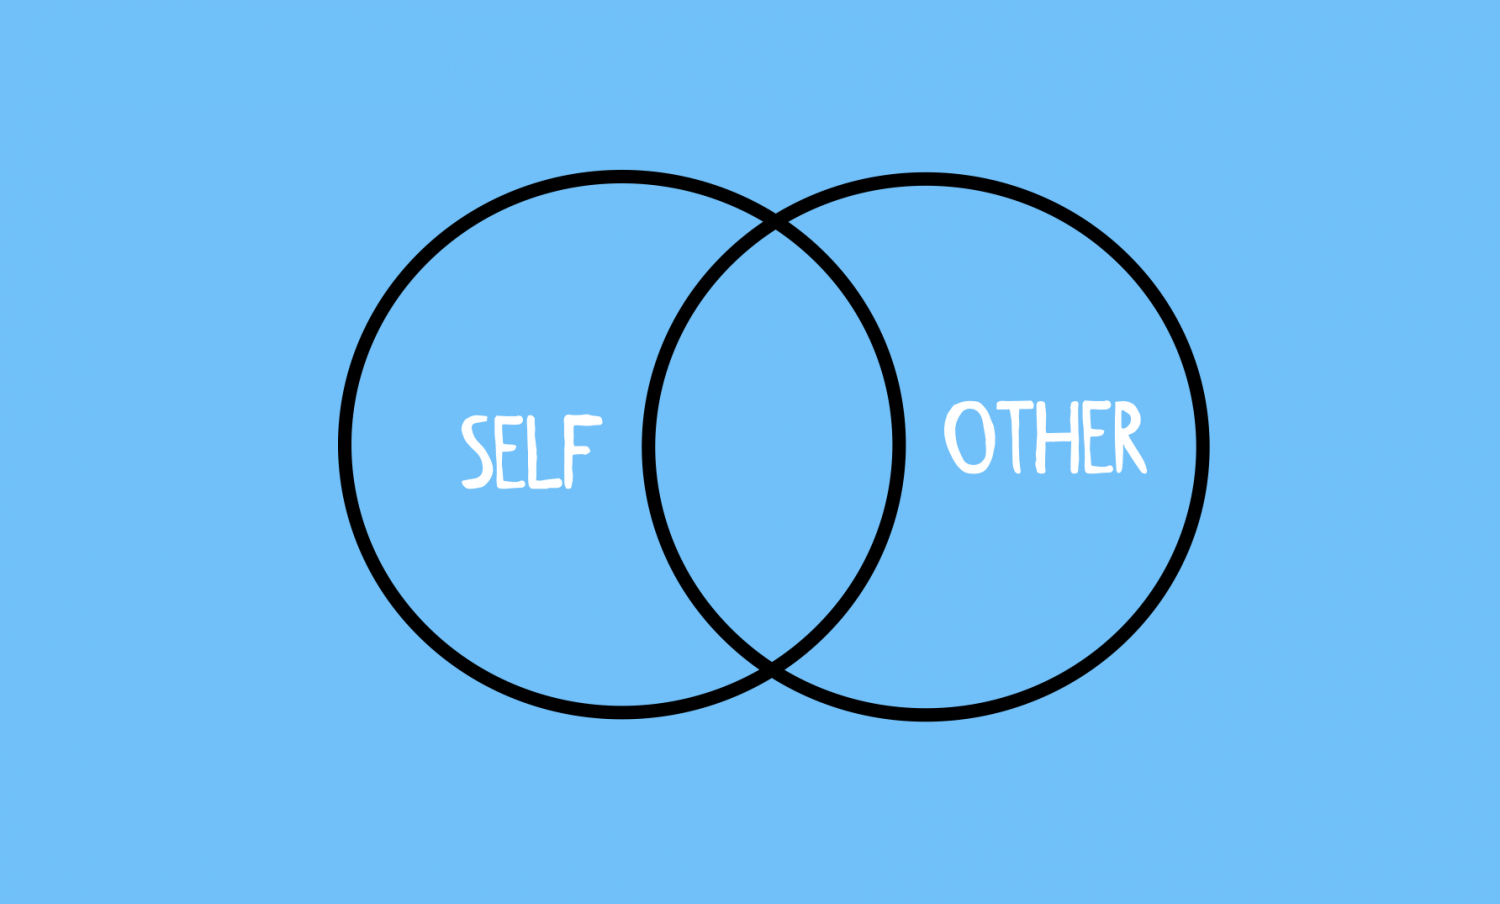 Inside the Self/Other overlap